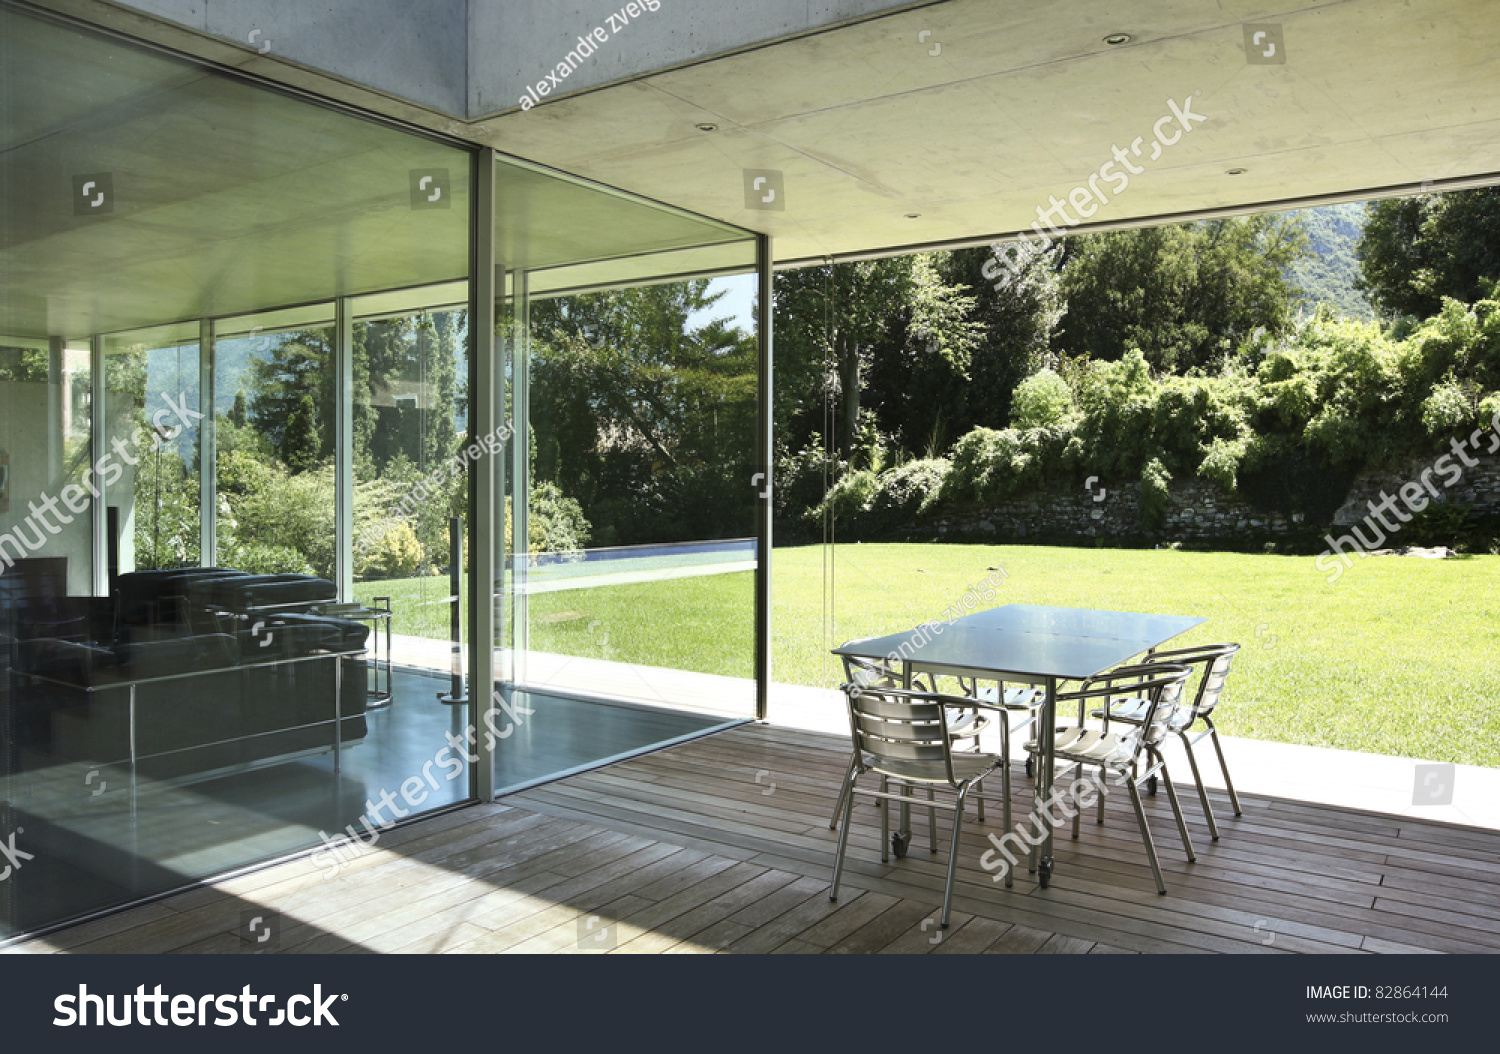 architecture modern house outdoors veranda stock photo 82864144 shutterstock. Black Bedroom Furniture Sets. Home Design Ideas